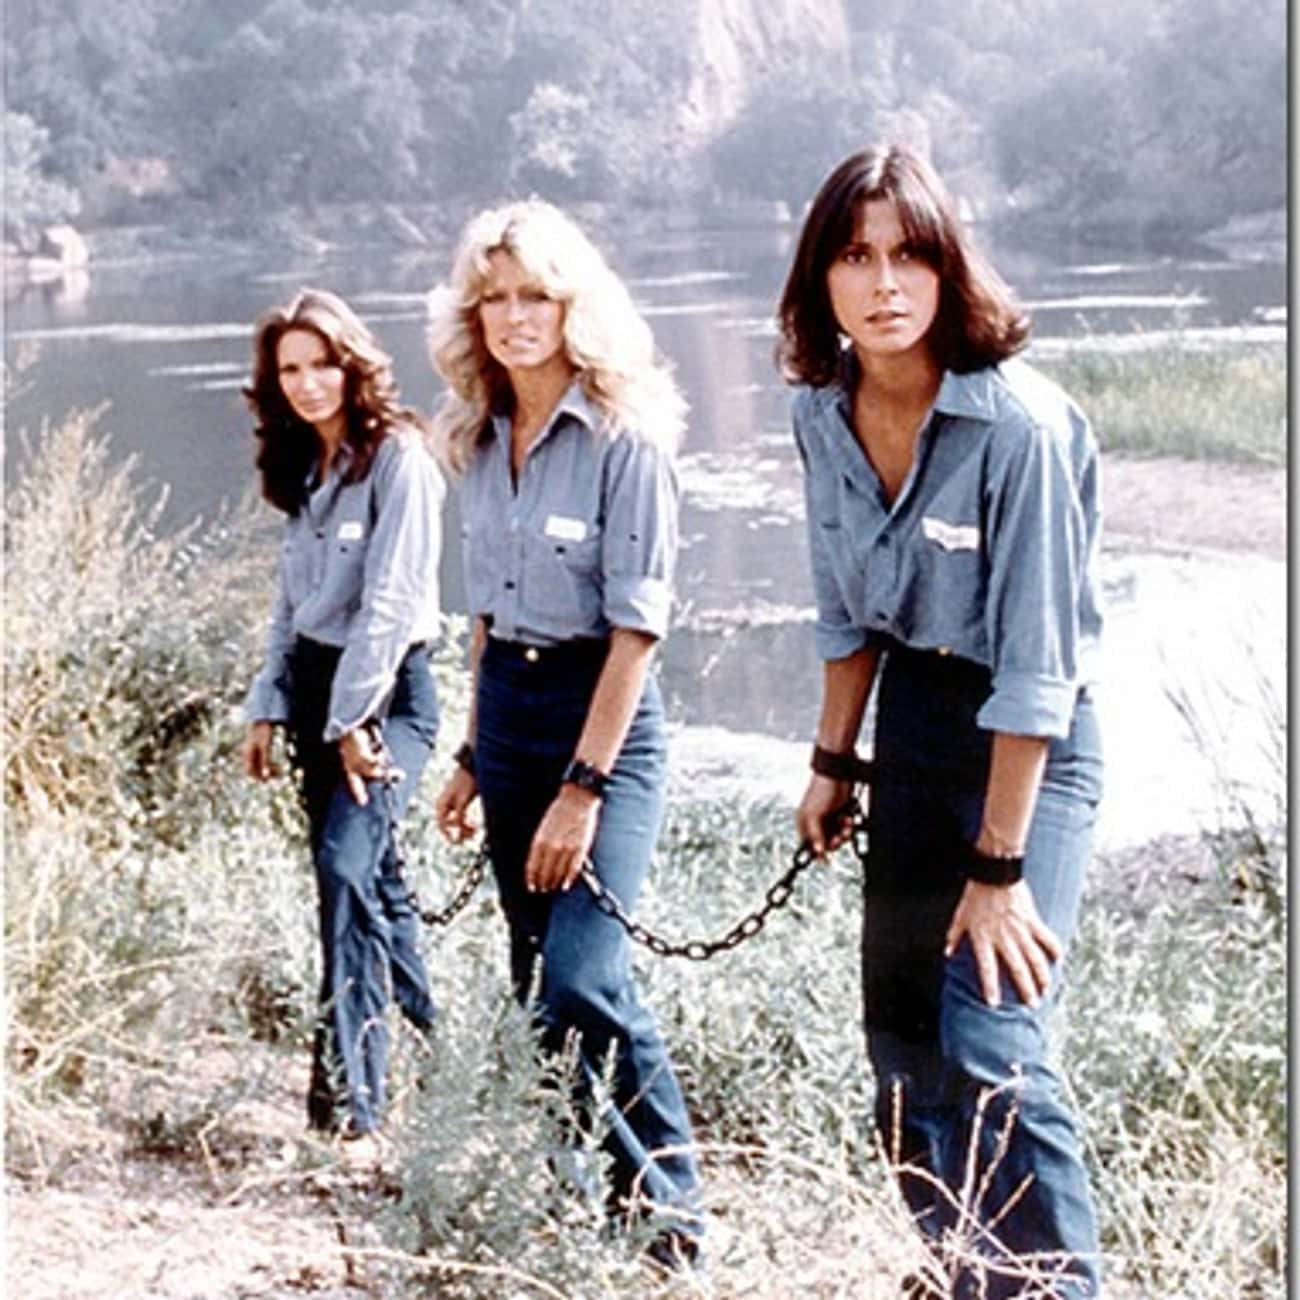 Angels in Chains is listed (or ranked) 1 on the list The Best Charlies Angels Episodes